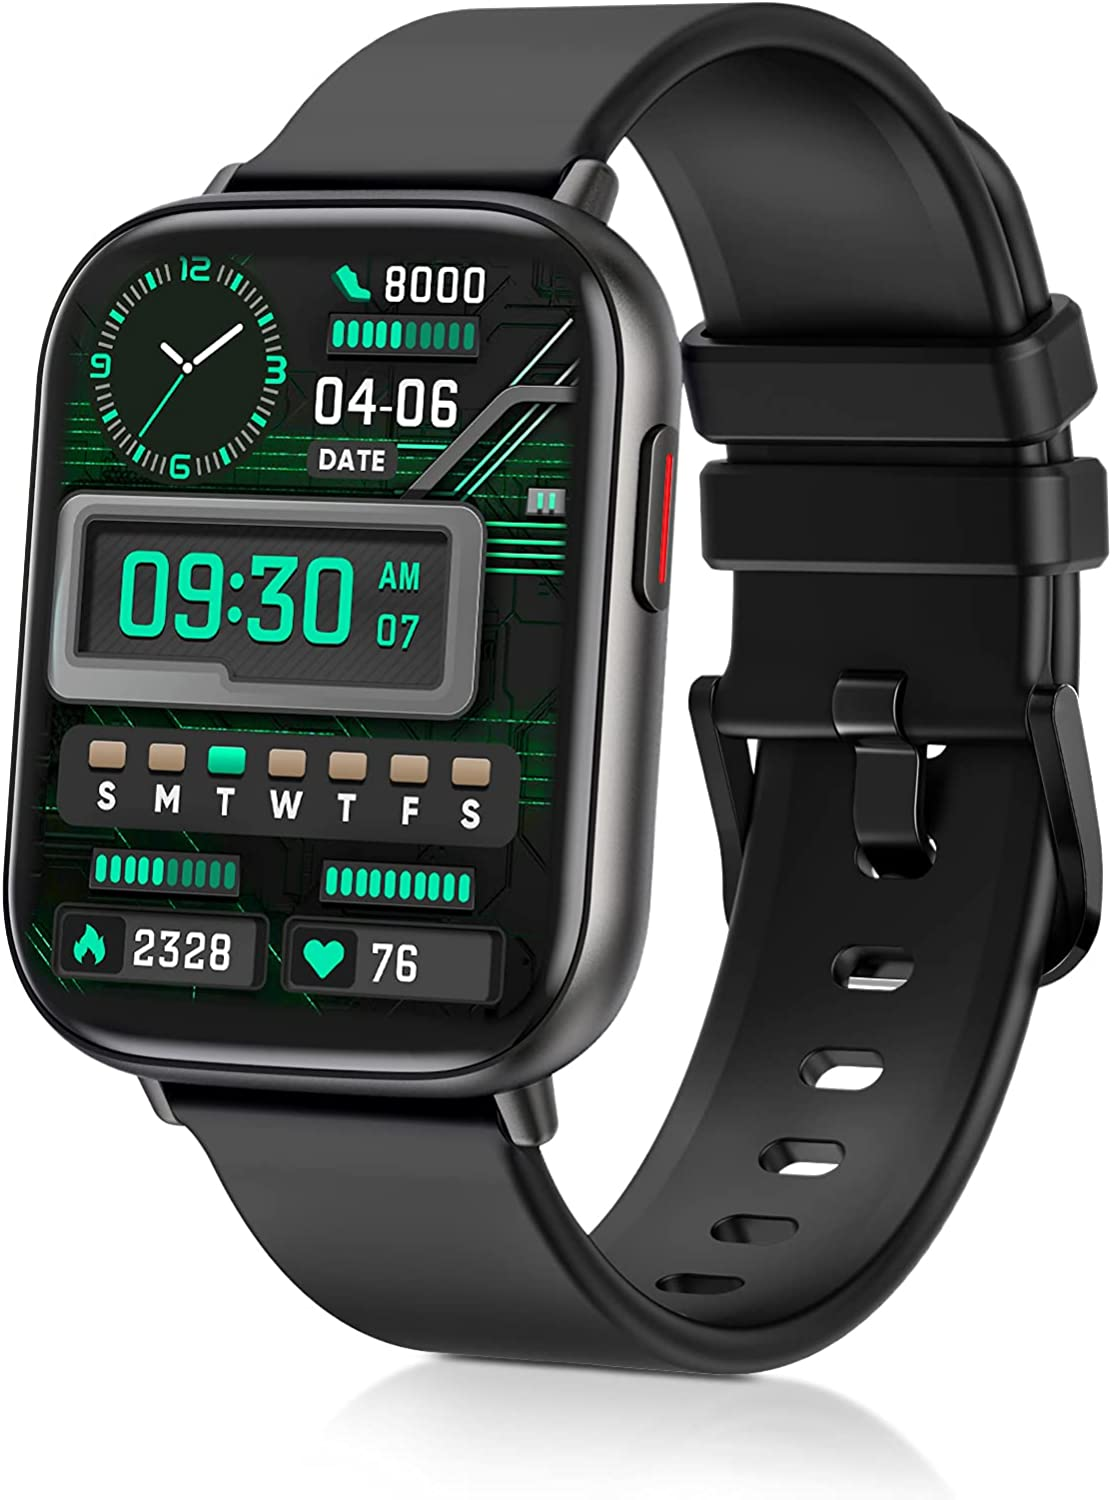 Smart Watches for Men Women,Fitness Tracker with Heart Rate Monitor Sport AMOLED Display Swimming Waterproof Watch for Android/ iOS/Phones, Black